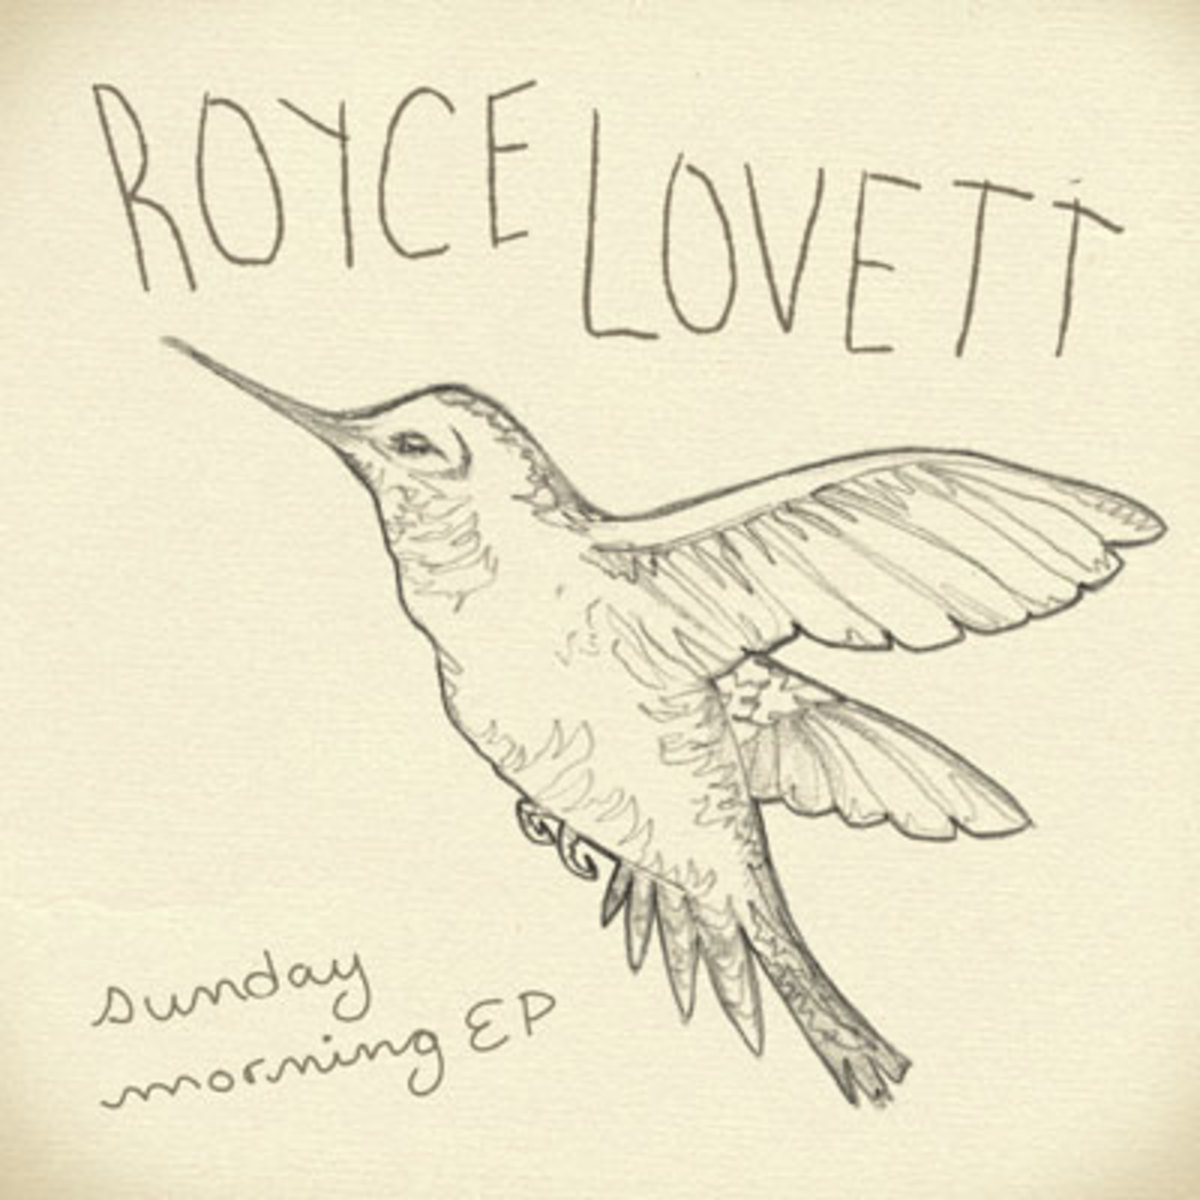 roycelovett-sundaymorningep.jpg